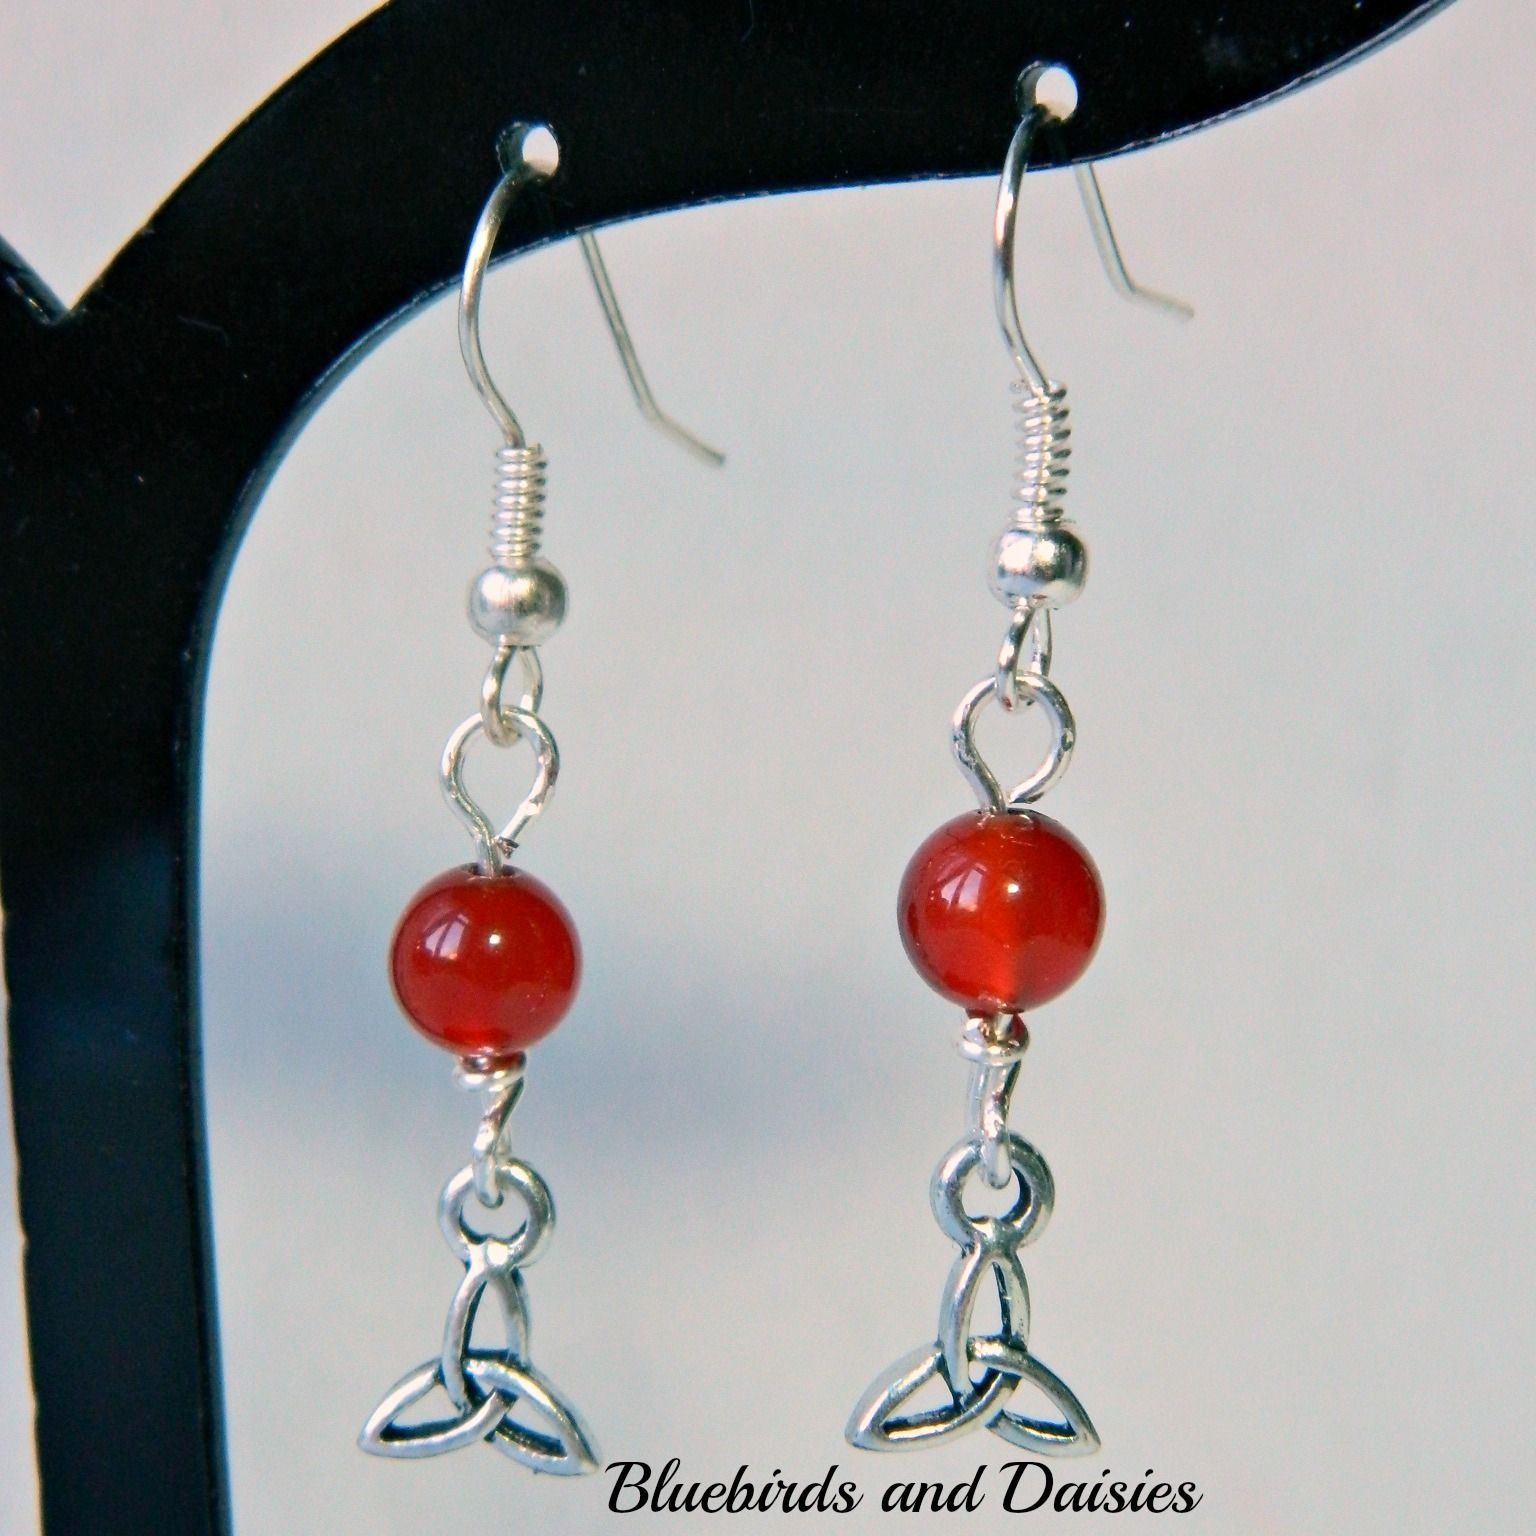 Triquetra earrings with carnelian beads